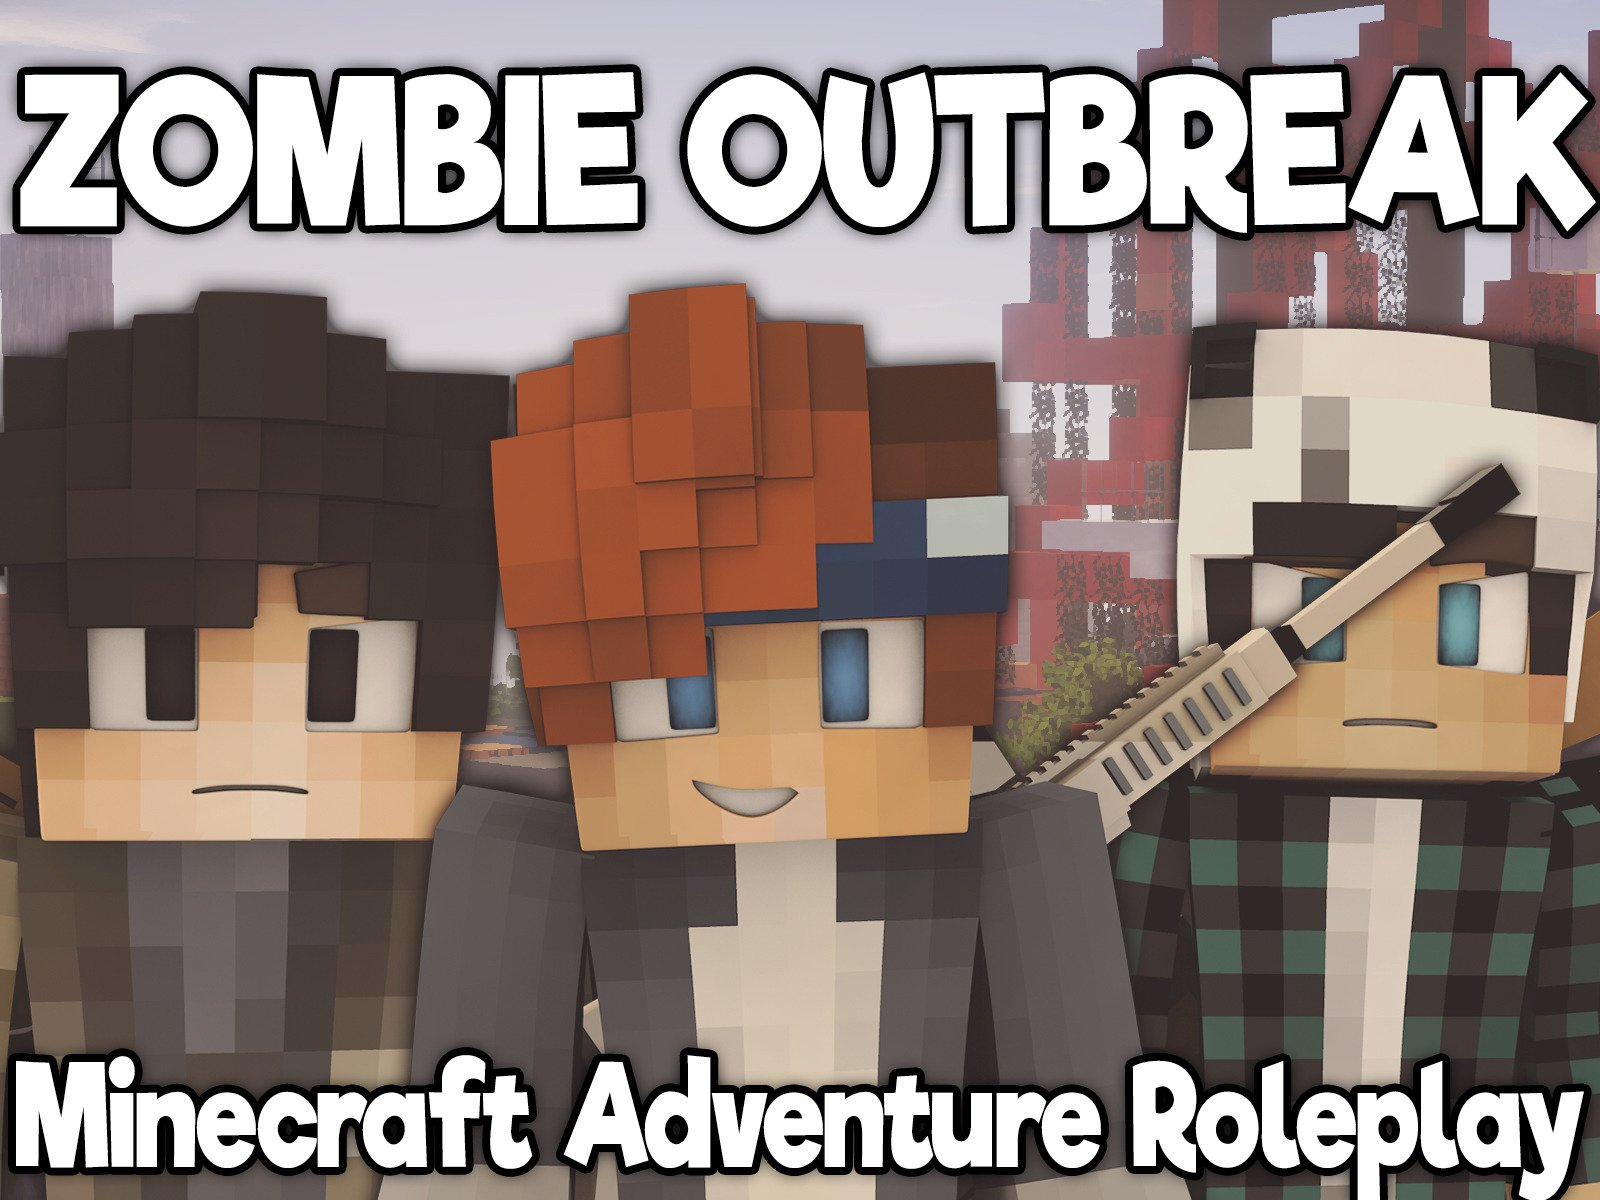 Zombie Outbreak (Minecraft Adventure Roleplay) - Season 1